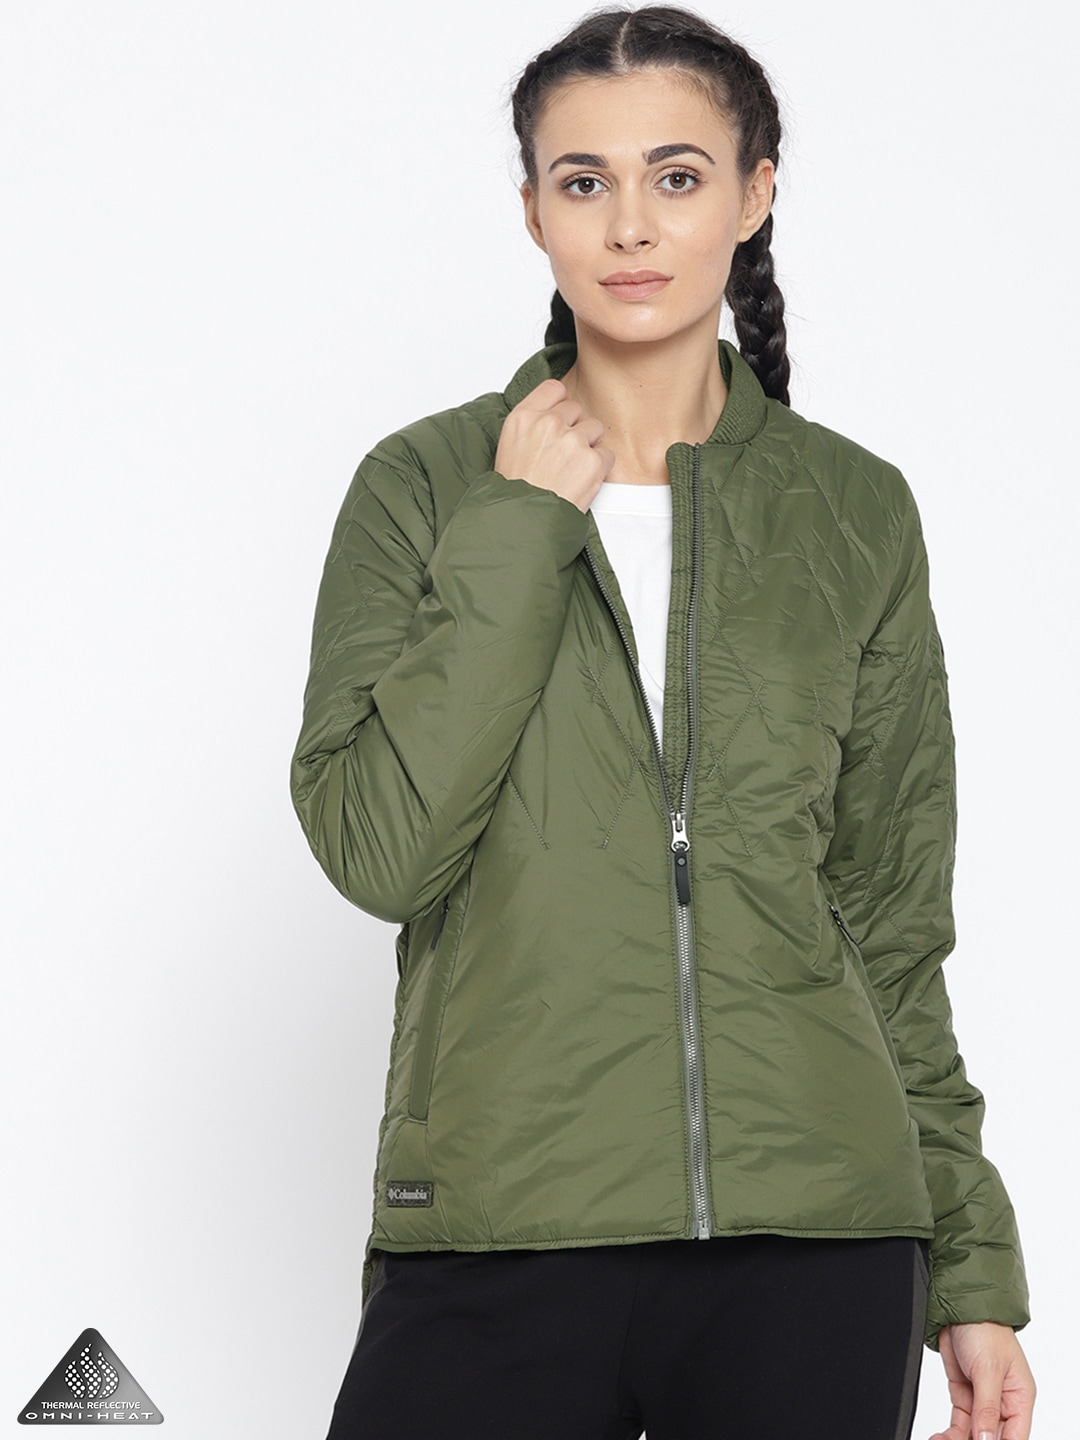 1b7e148b7d3c3 Columbia Jackets - Buy Jackets from Columbia Online